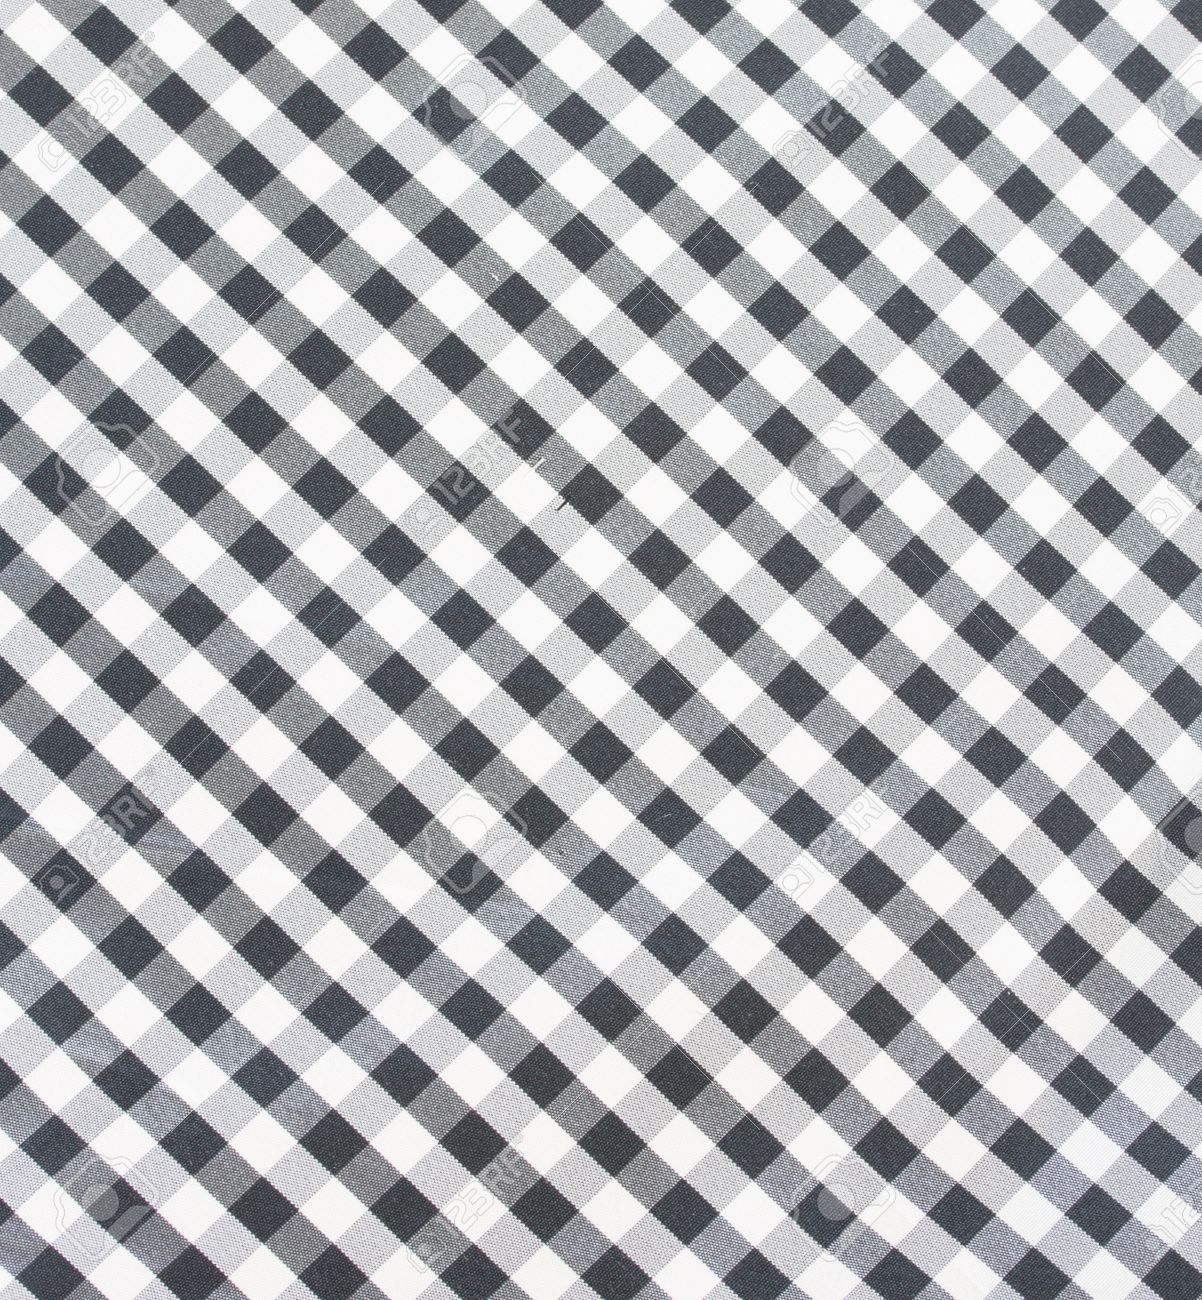 Black And White Checkered Fabric, Tablecloth Texture Stock Photo   22230165